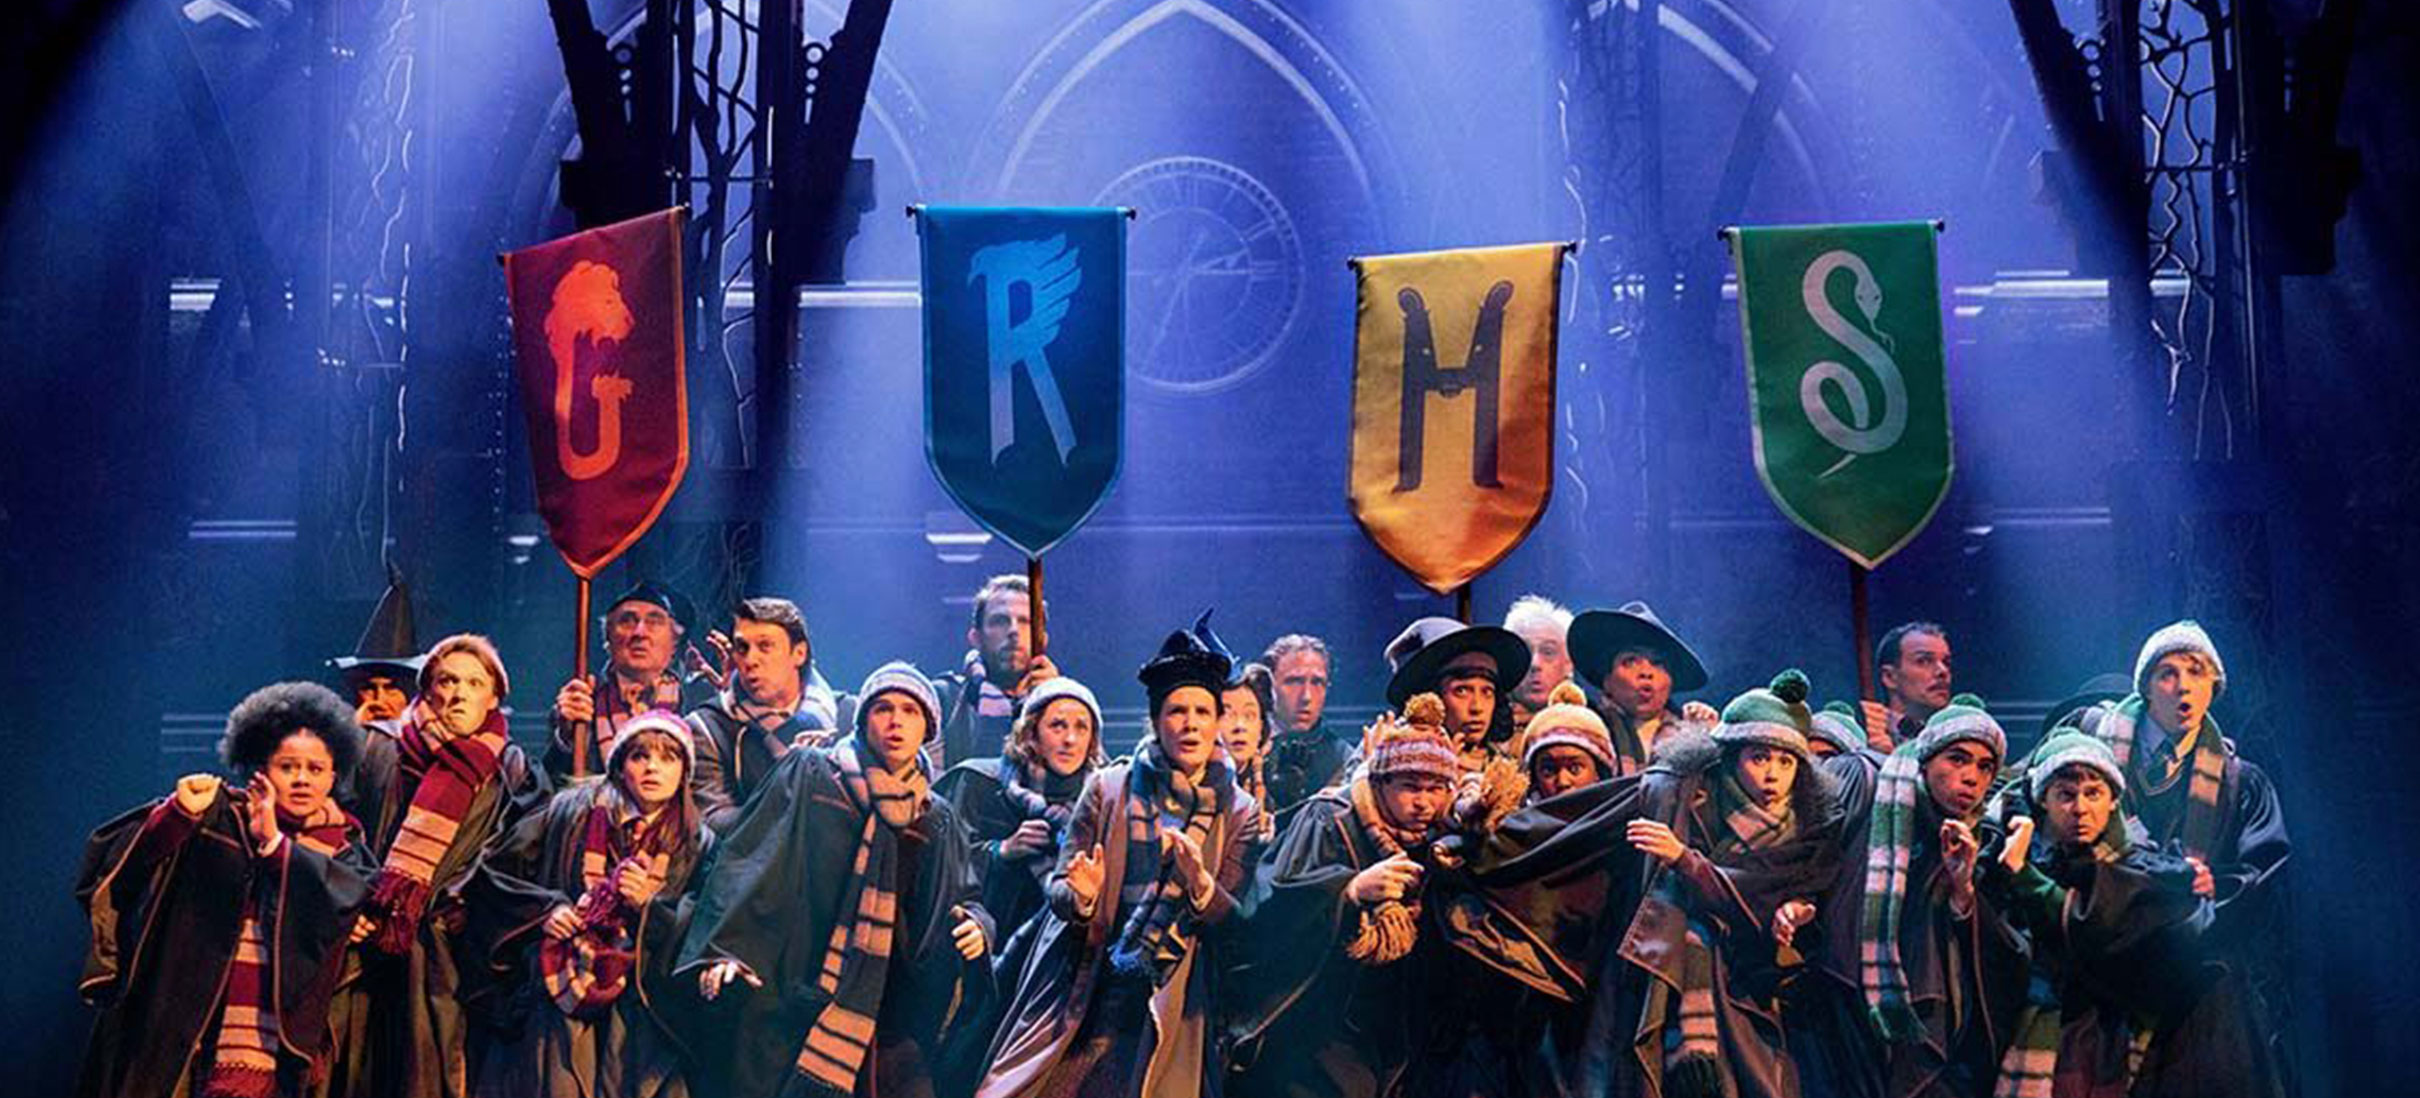 Harry Potter and the Cursed Child: Casting Audio Magic to Every Seat in the House